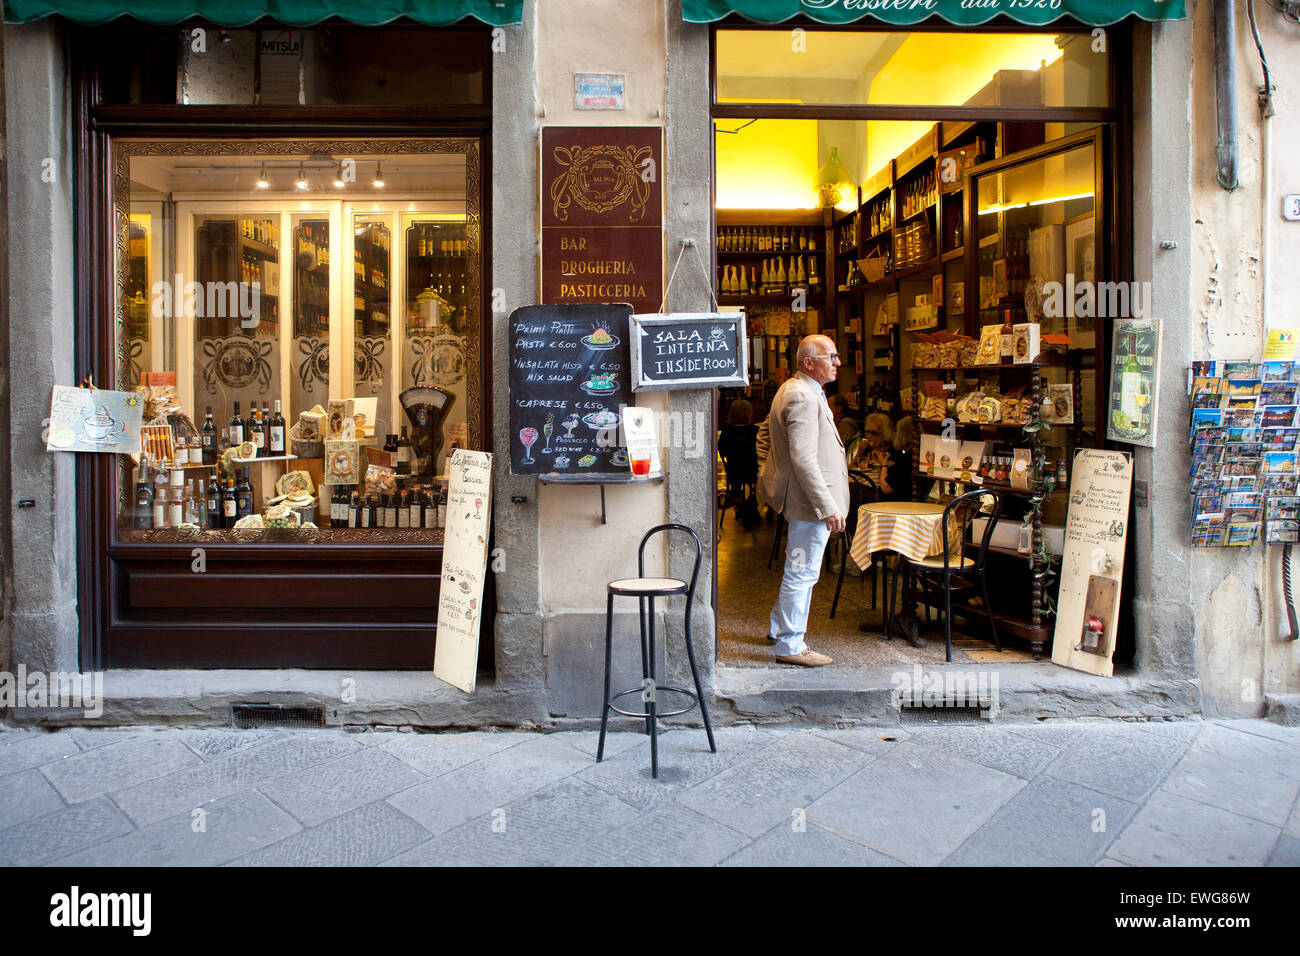 Italian Deli, old town Lucca Italy - Stock Image